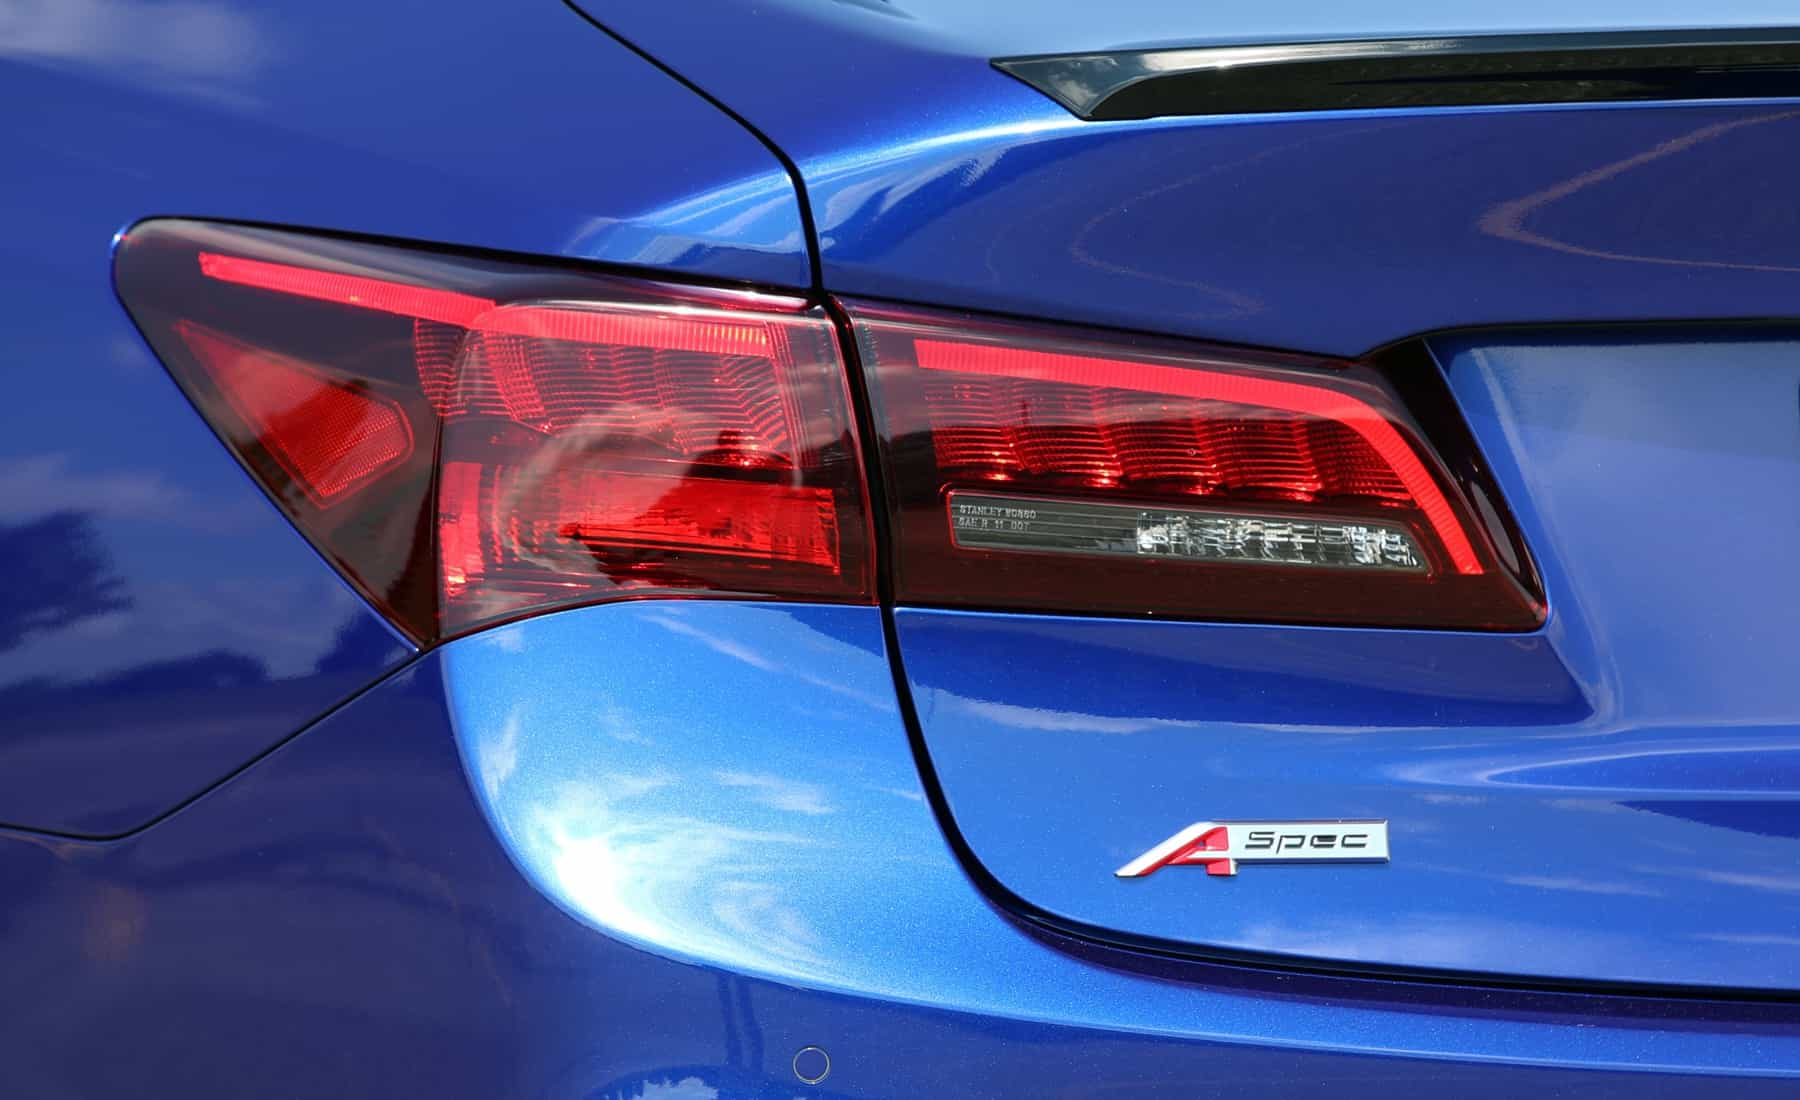 2018 Acura TLX Exterior View Taillight (View 27 of 46)